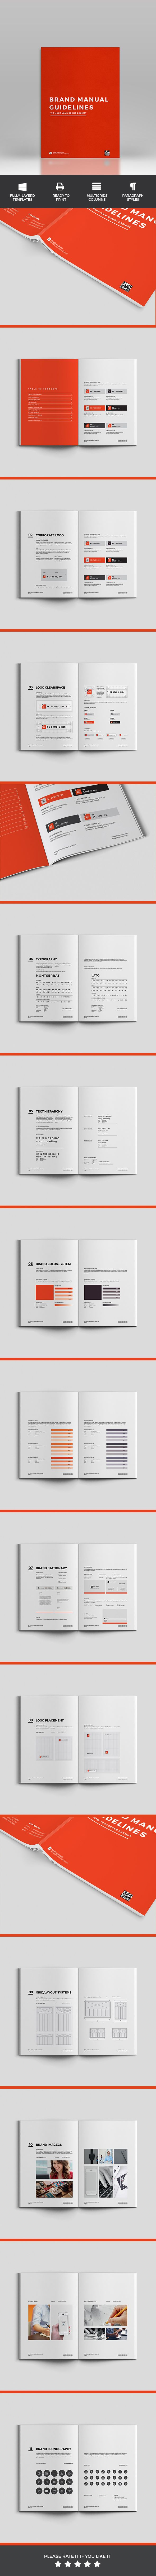 It's a 30 page Clean Brand Book template is for company or office and agency based projects. Just drop in your own images and texts, and it's ready to Print. this Brand Book is loaded with paragraph/character styles for easy customization.